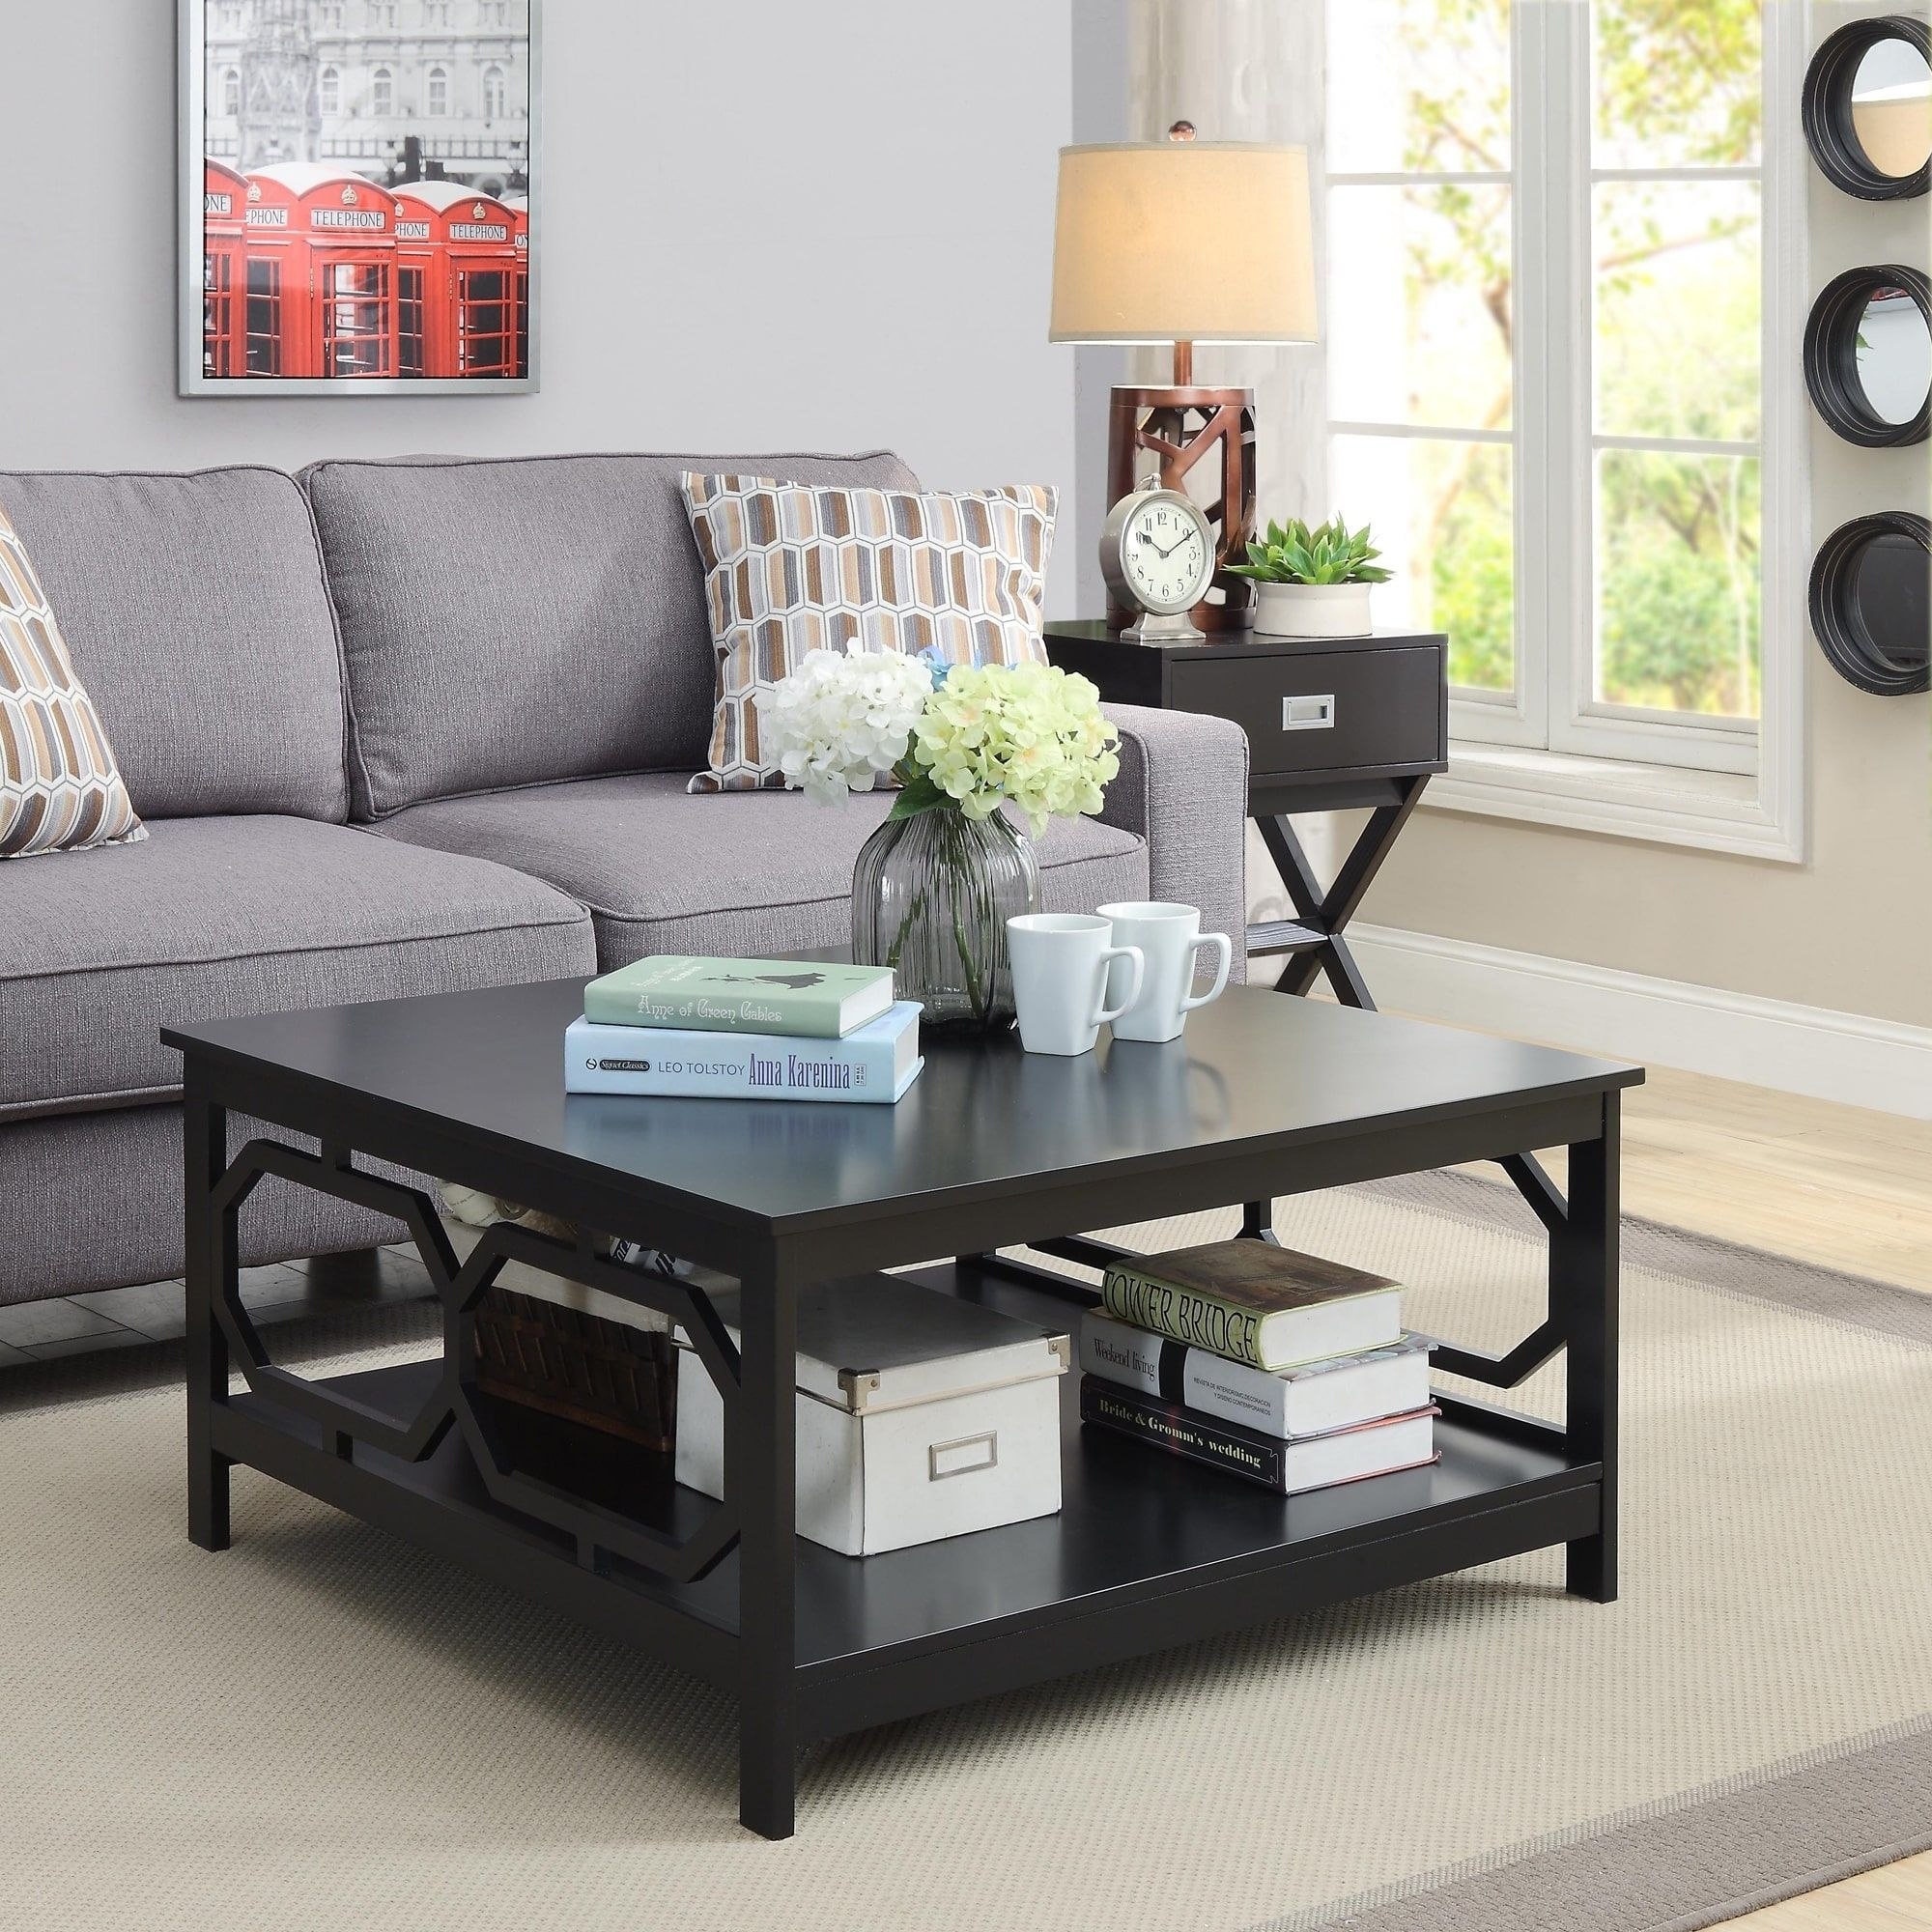 Overstock com online shopping bedding furniture electronics jewelry clothing more living room